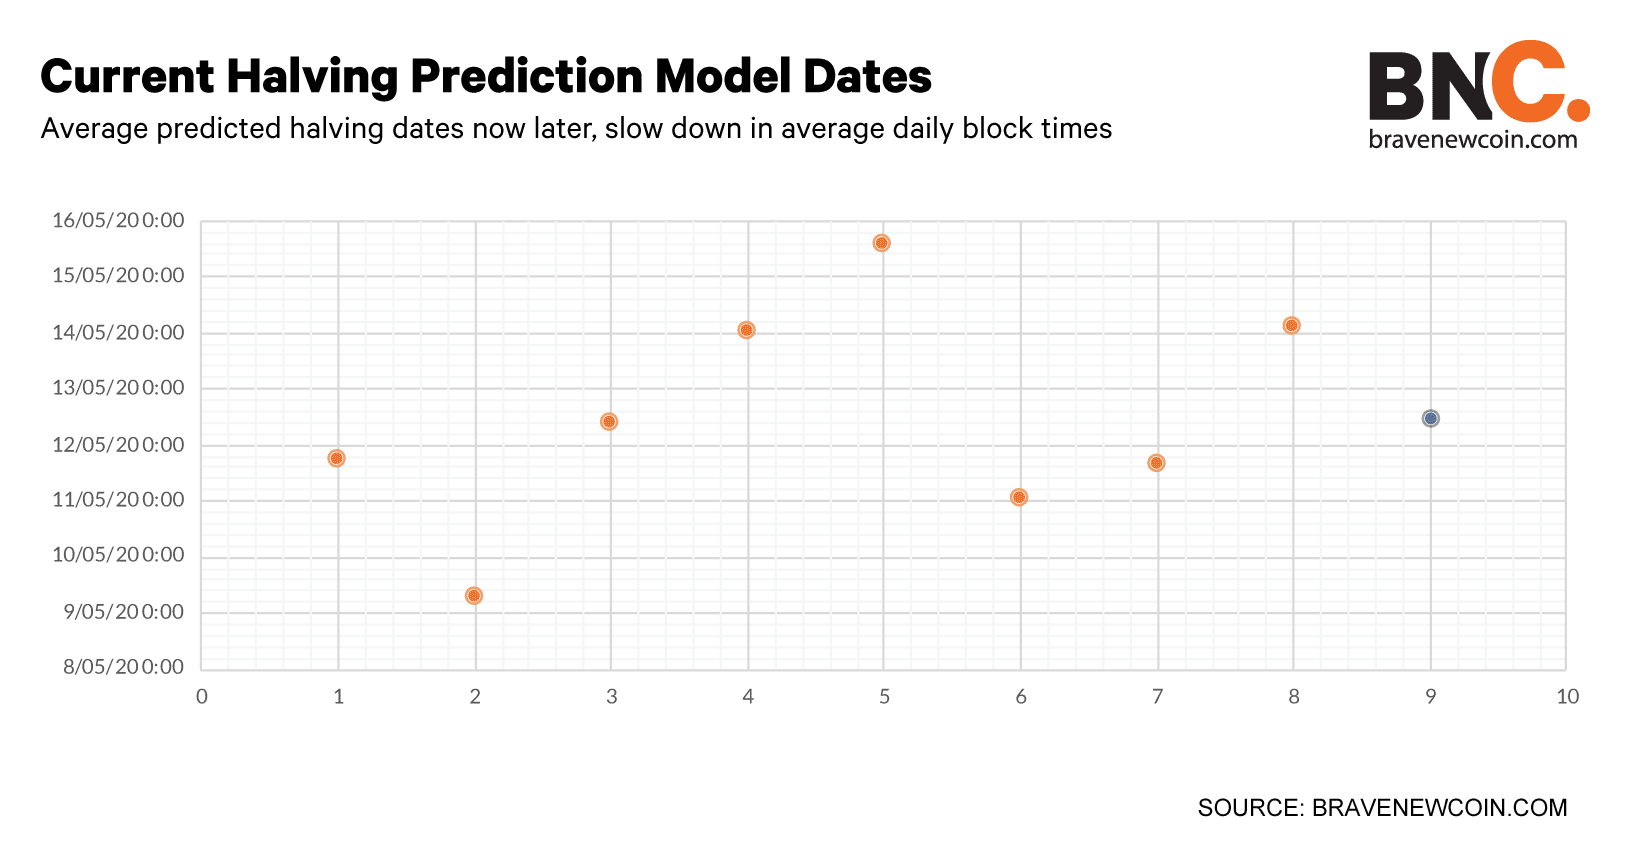 Current-halving-prediction-model-dates-Subheading